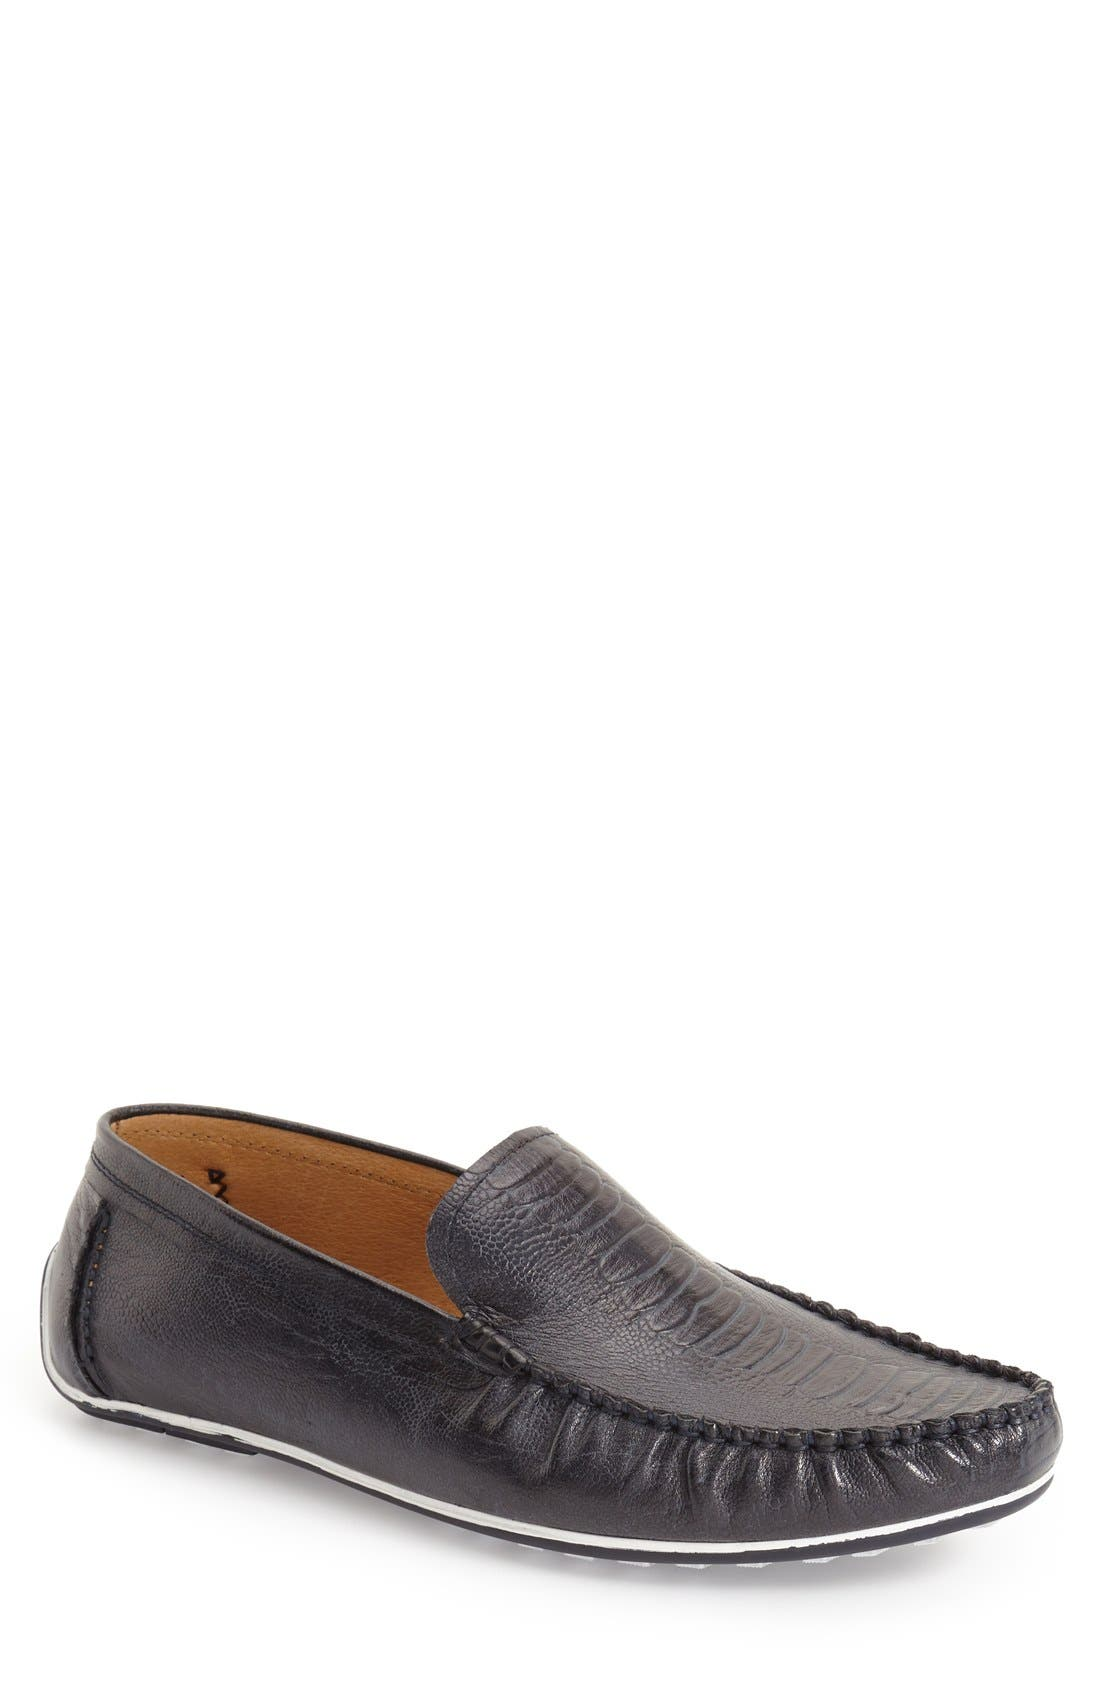 Main Image - Zanzara 'Rembrandt' Driving Loafer (Men)